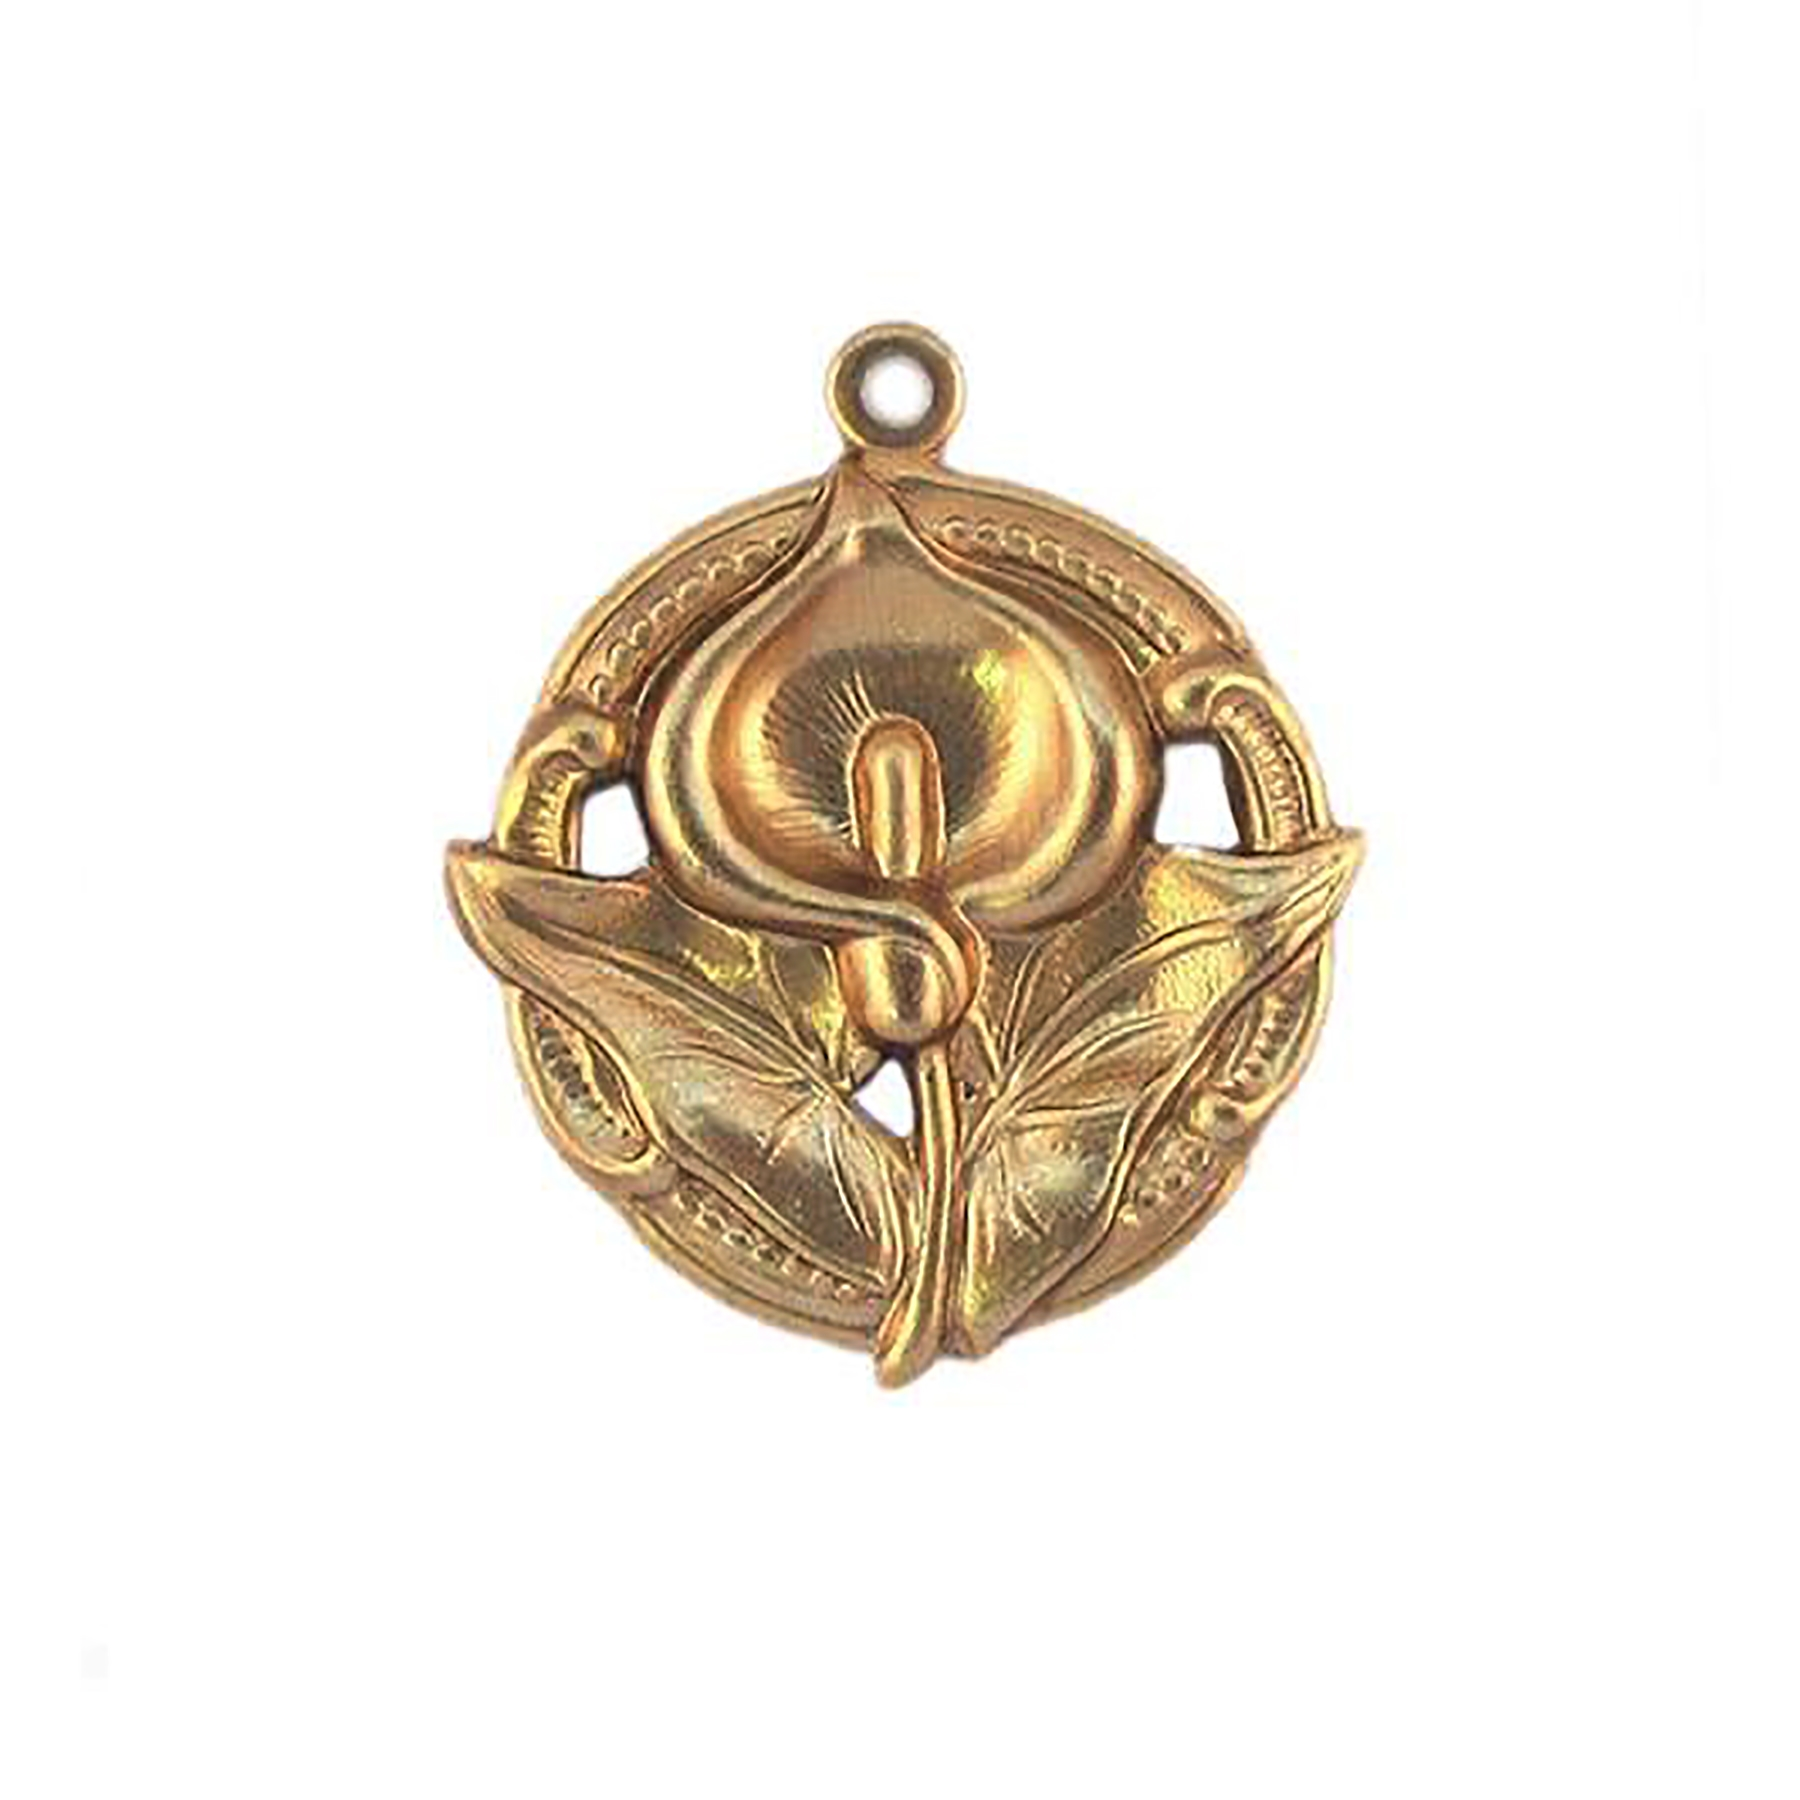 lily pendant, raw brass, pendant, unplated brass, flower design, garden pendant, US made, flower pendant, drop pendant, jewelry making, jewelry supplies, vintage supplies, jewelry findings, brass stamping, charm, floral design, lily, 09262